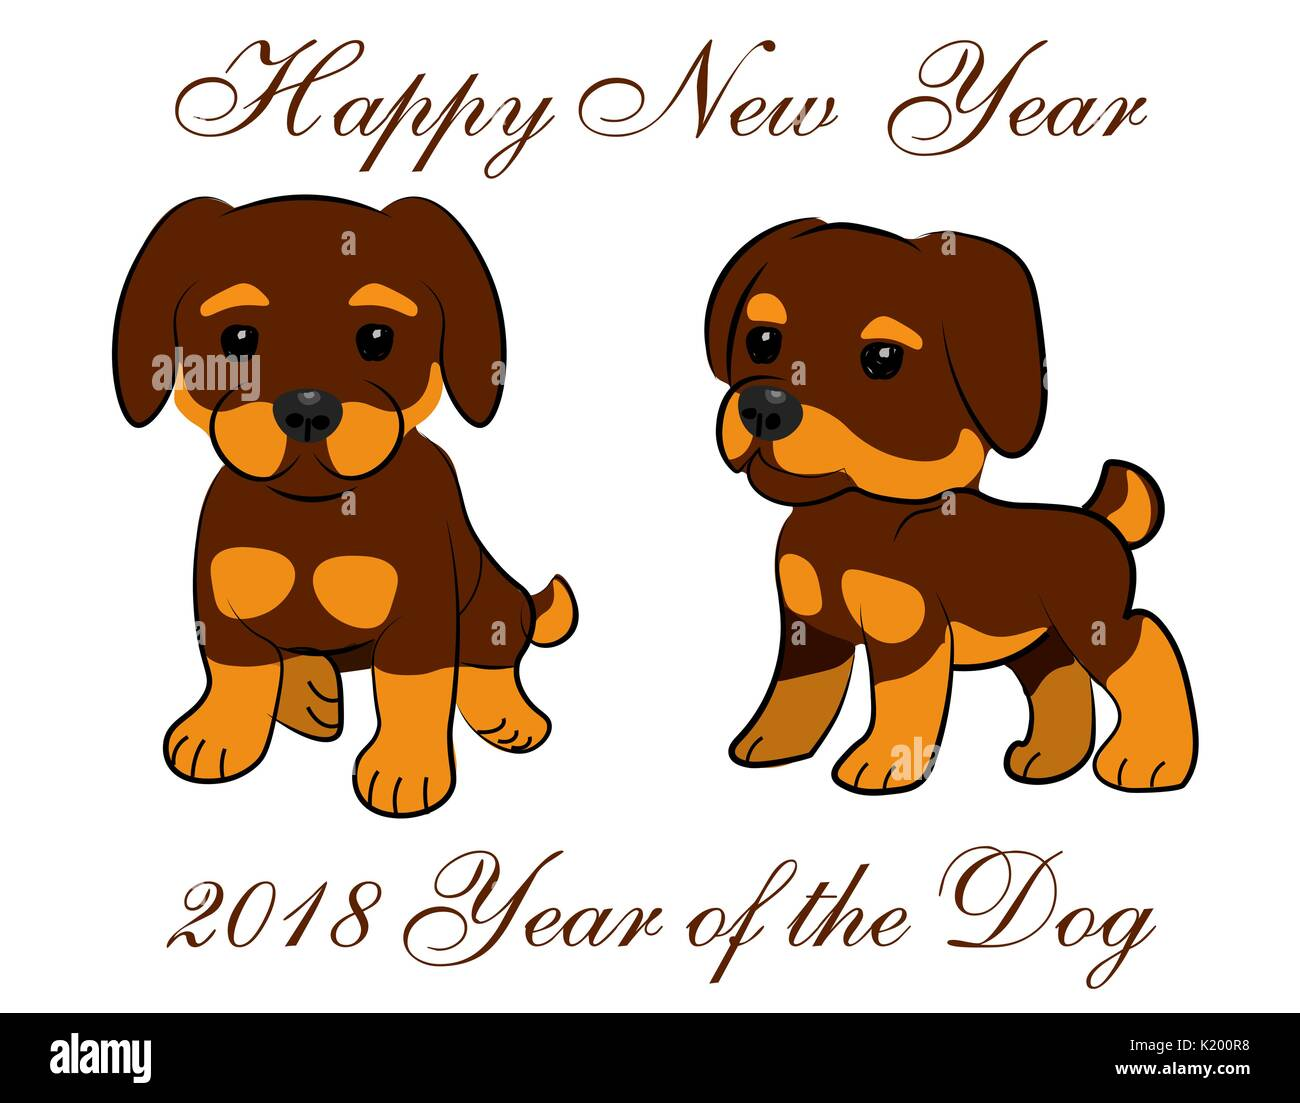 new year card 2018 year of the dog two animated puppies illustration